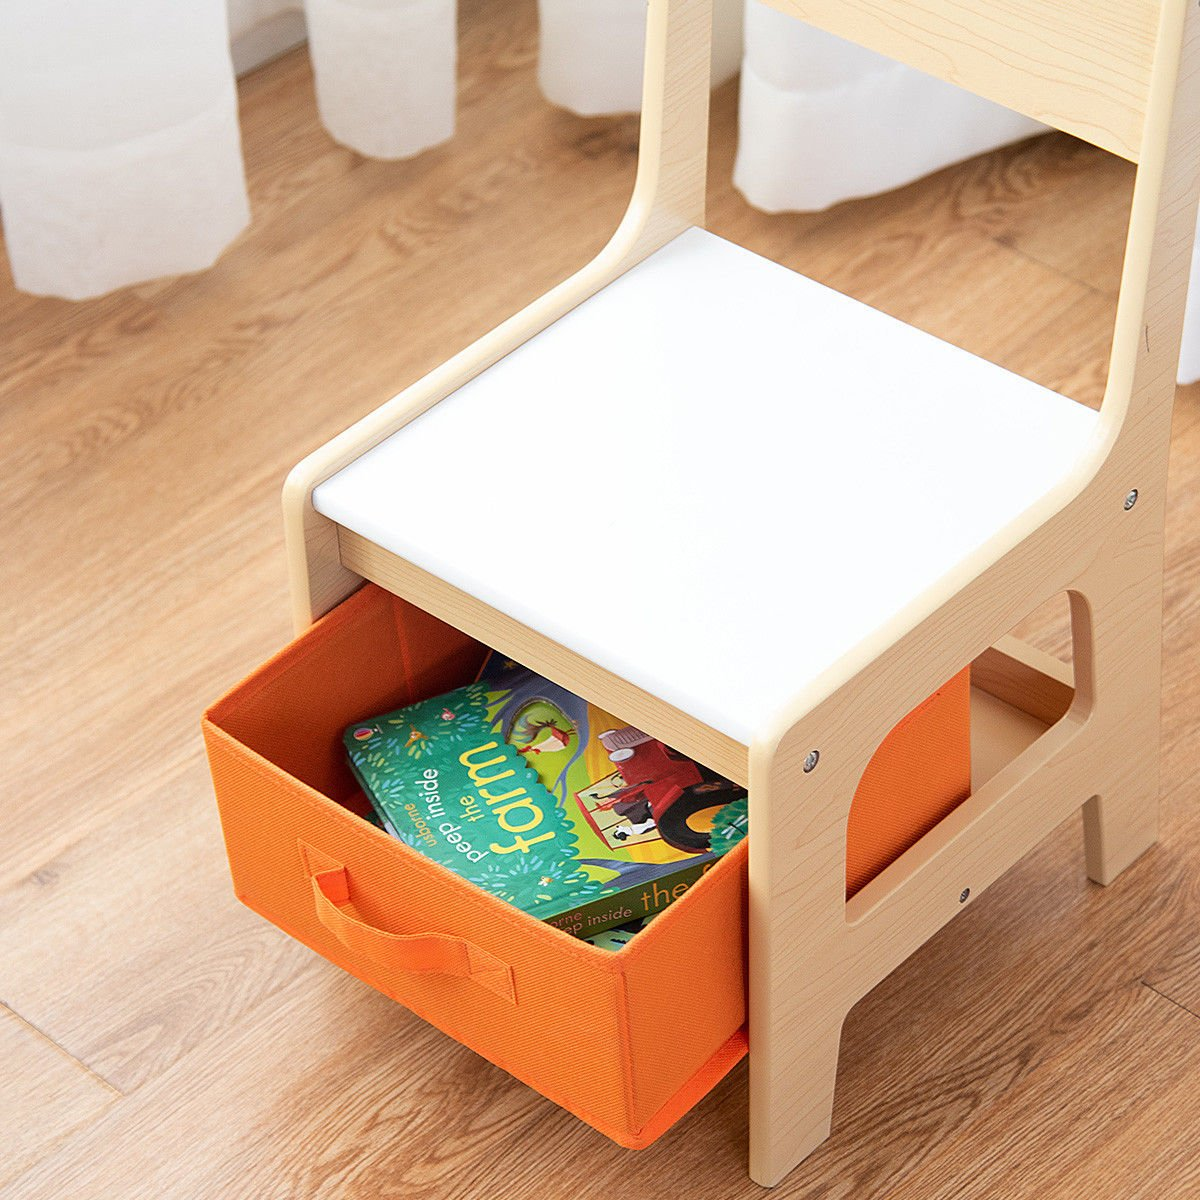 Costzon Kids Table and 2 Chairs Set, 3 in 1 Wooden Table Furniture for Toddlers Drawing, Reading, Train, Art Playroom, Activity Table Desk Sets (Convertible Set with Storage Space) by Costzon (Image #6)